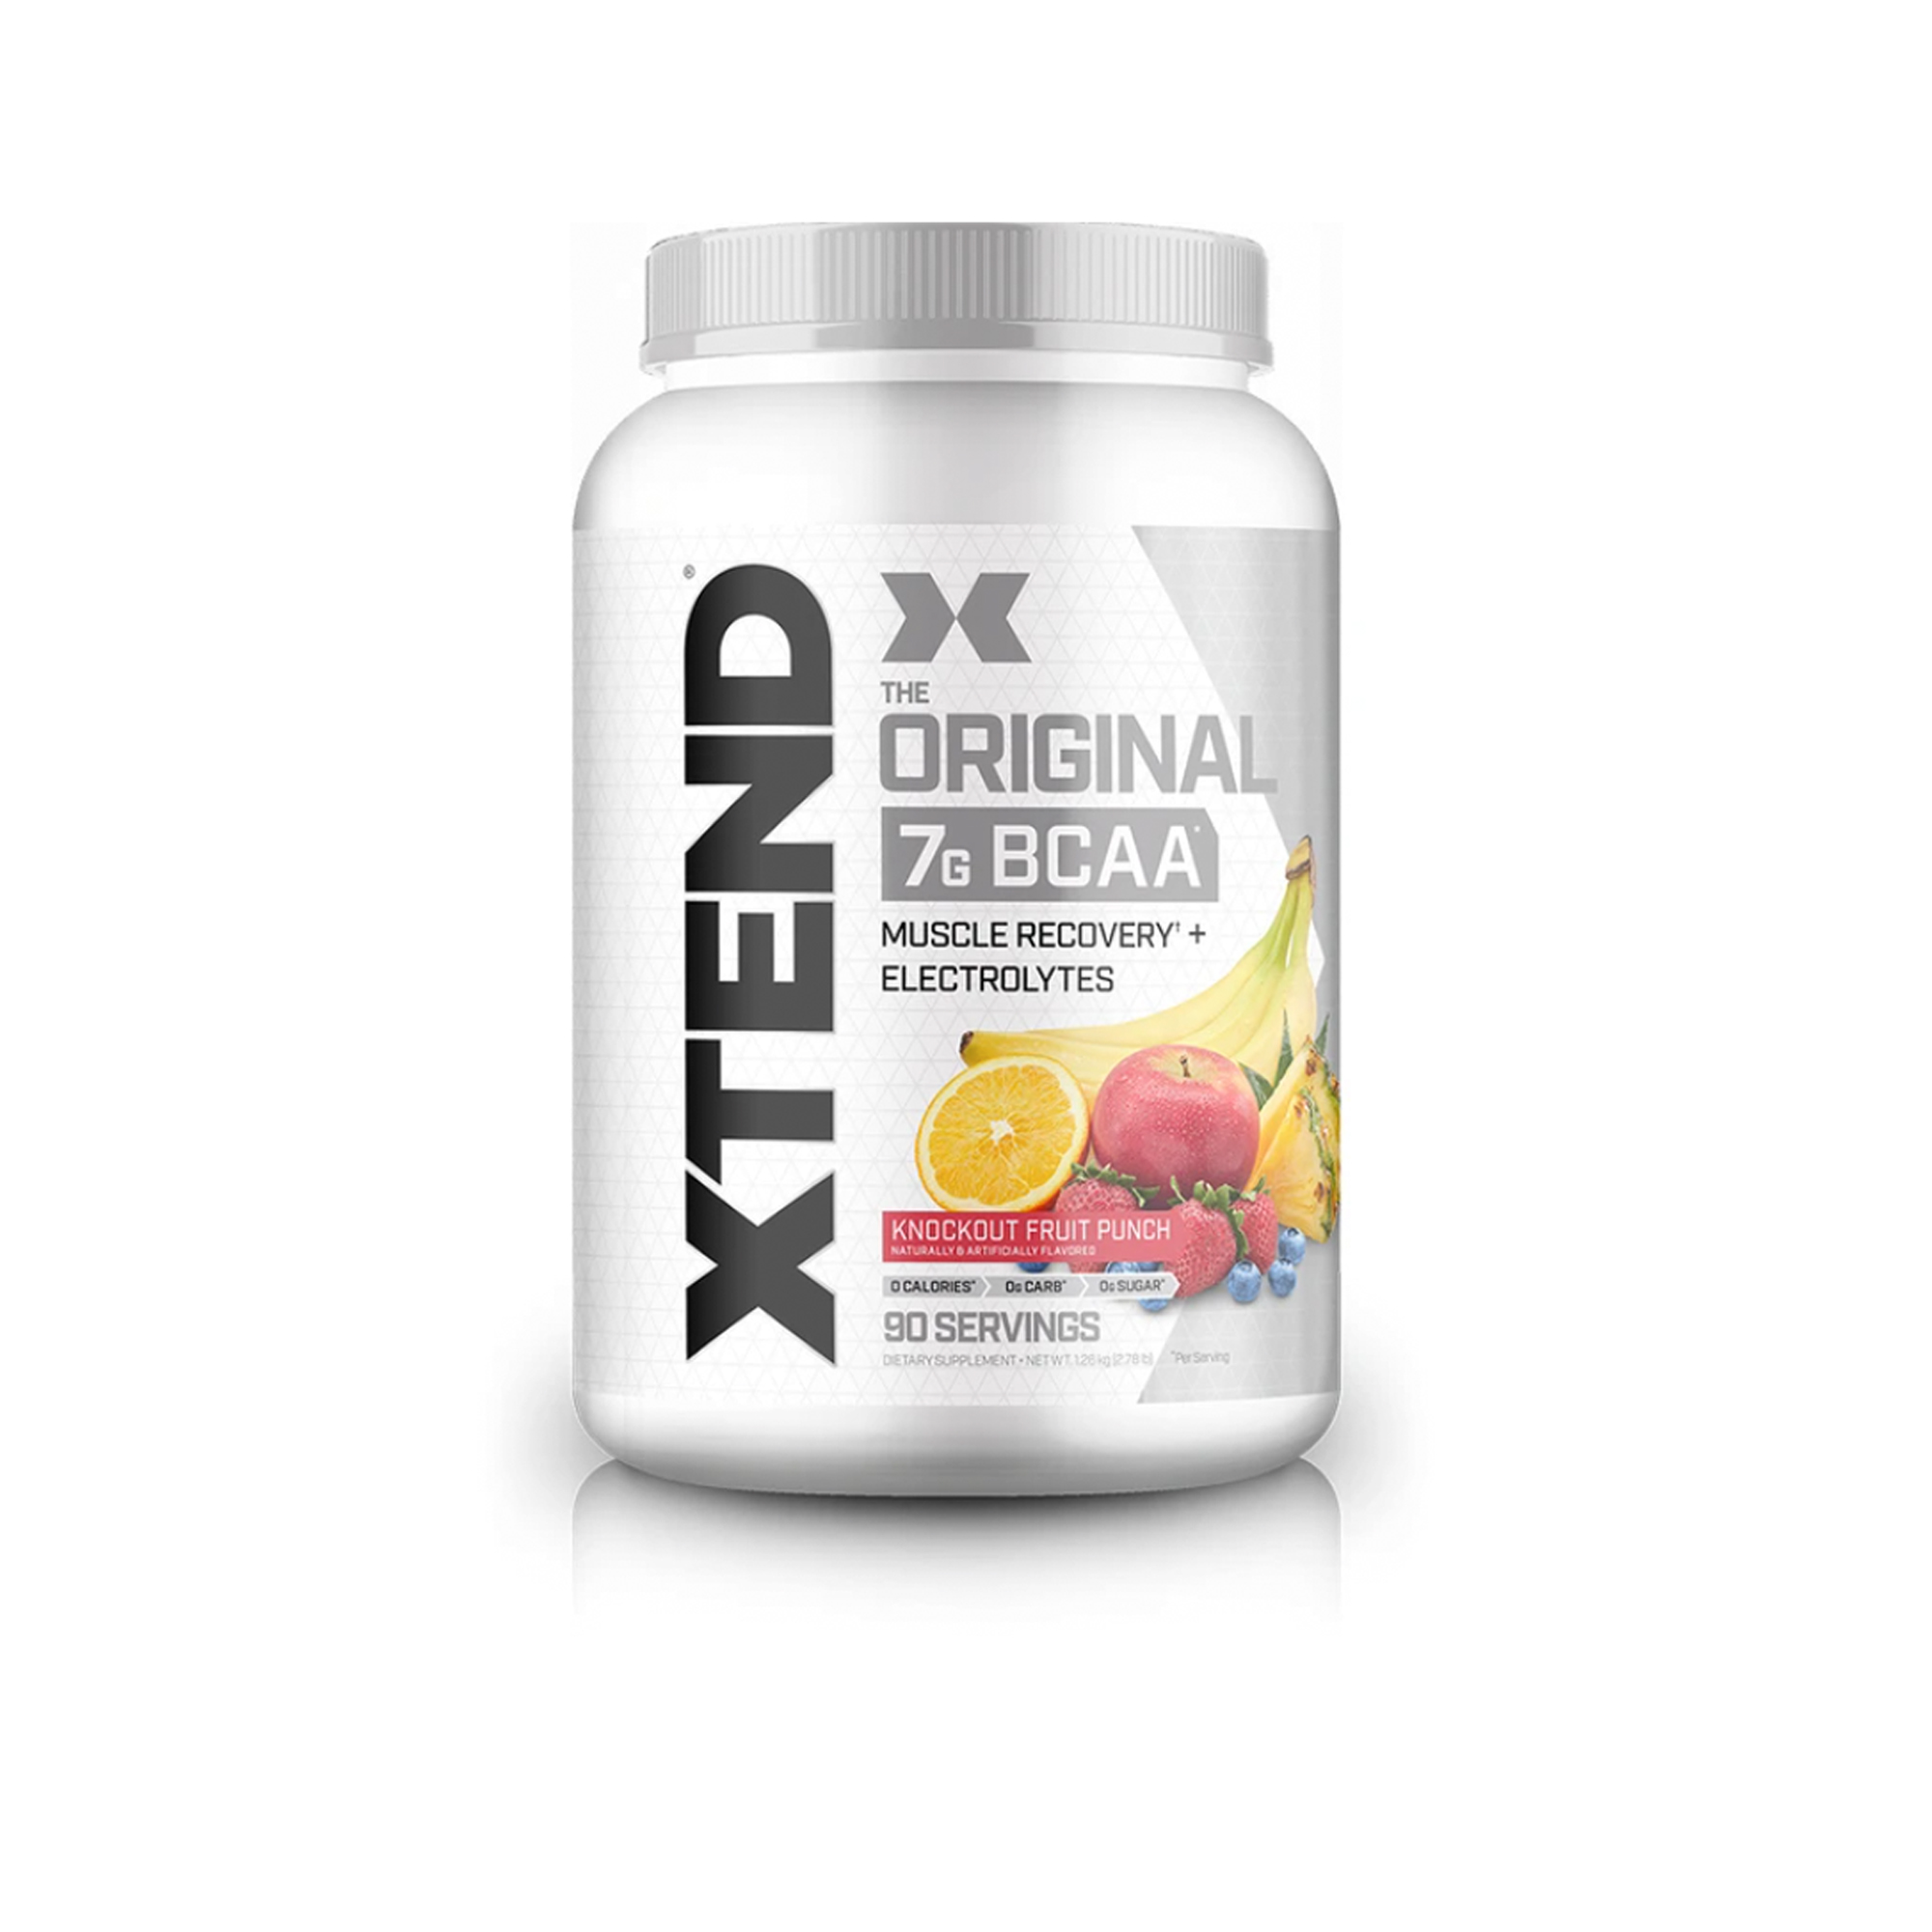 Scivation Xtend Original BCAA KNOCKOUT FRUIT PUNCH 90 Servings available at Nutrition Depot Philippines